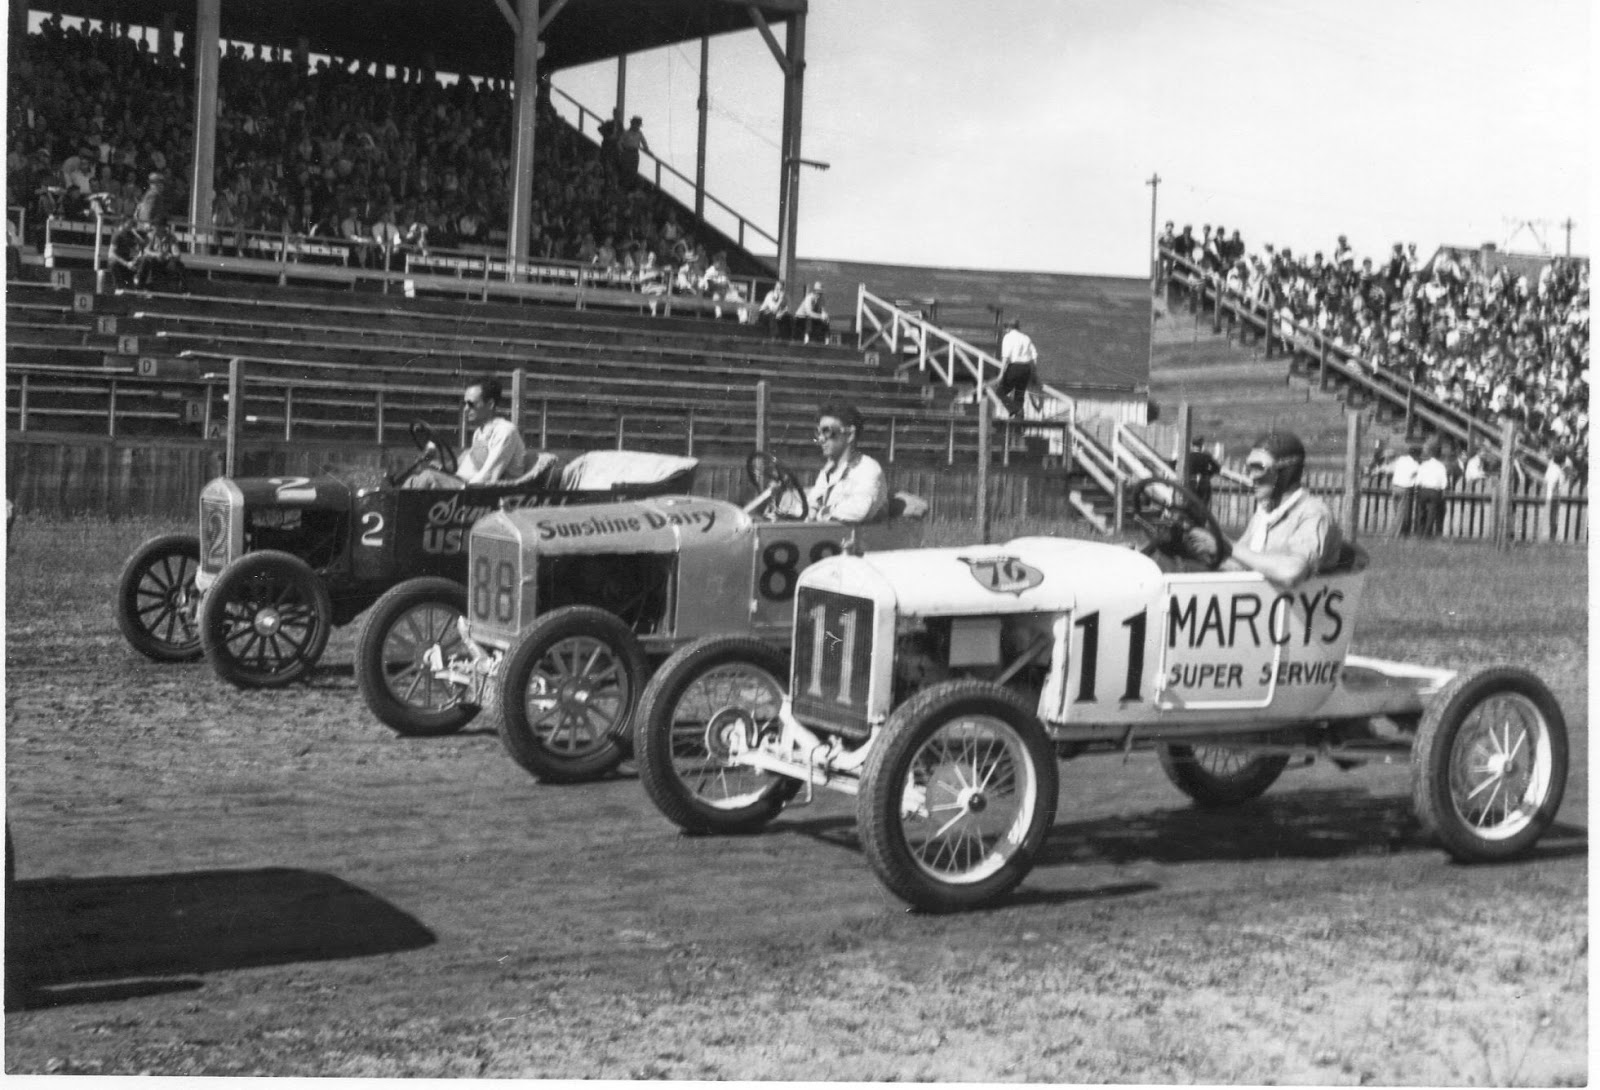 bygone walla walla vintage images of the city and county marcy s race car